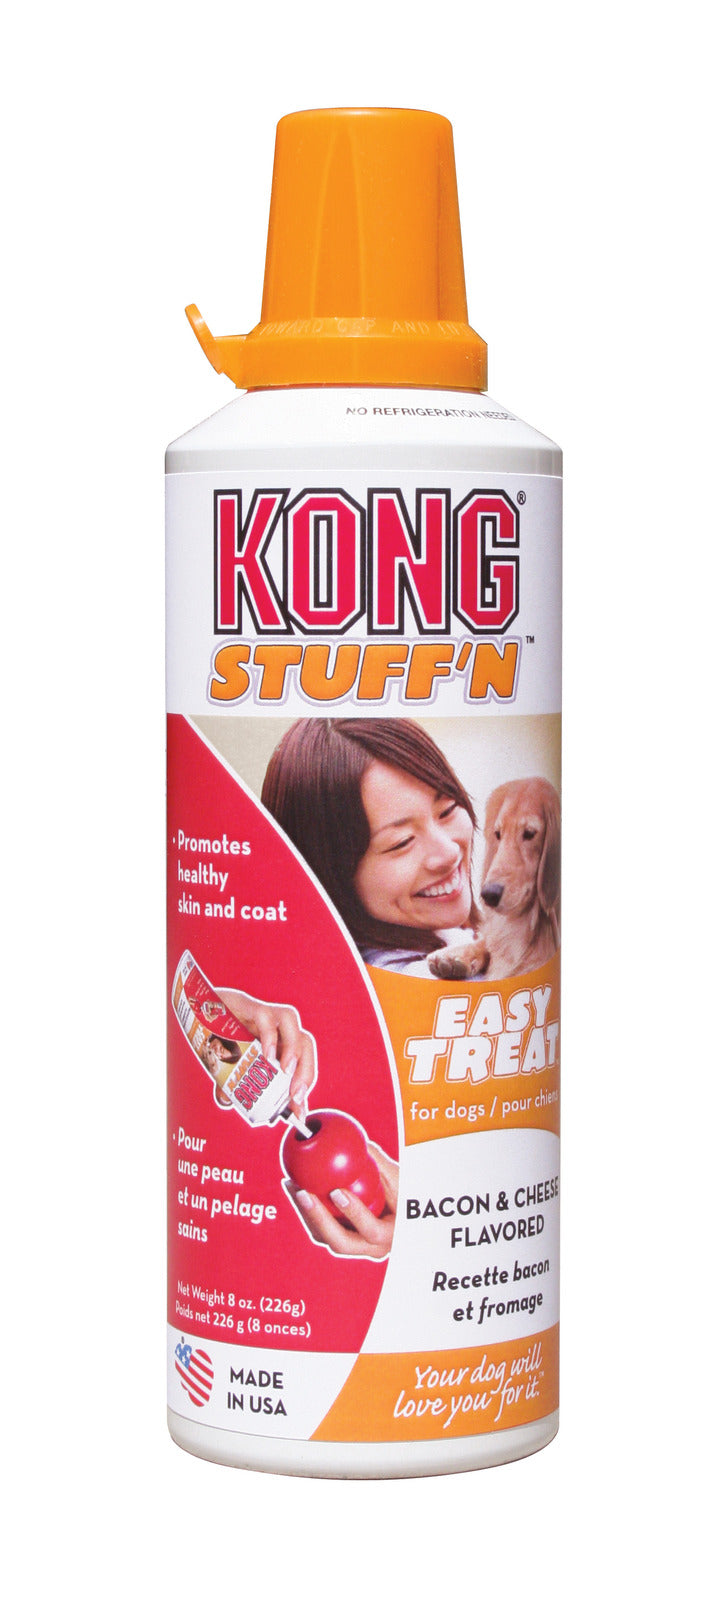 KONG Easy Treats - Bacon & Cheese - Positive Dog Products